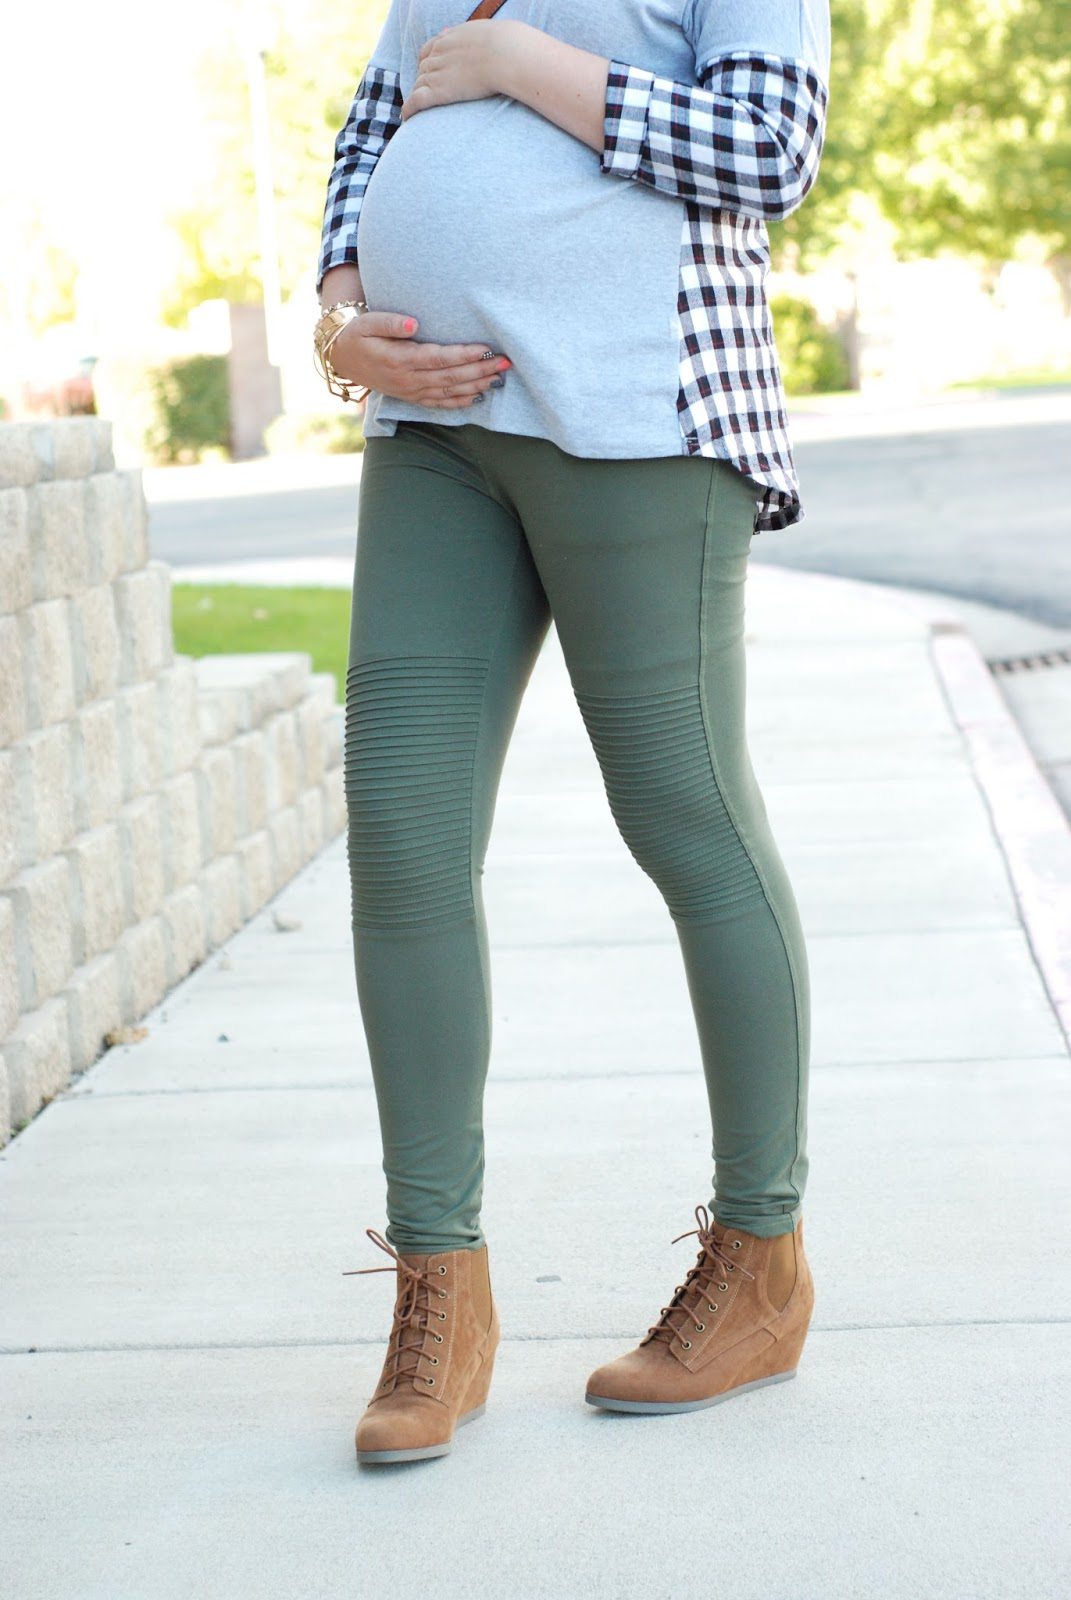 Green Leggings, ASOS Maternity